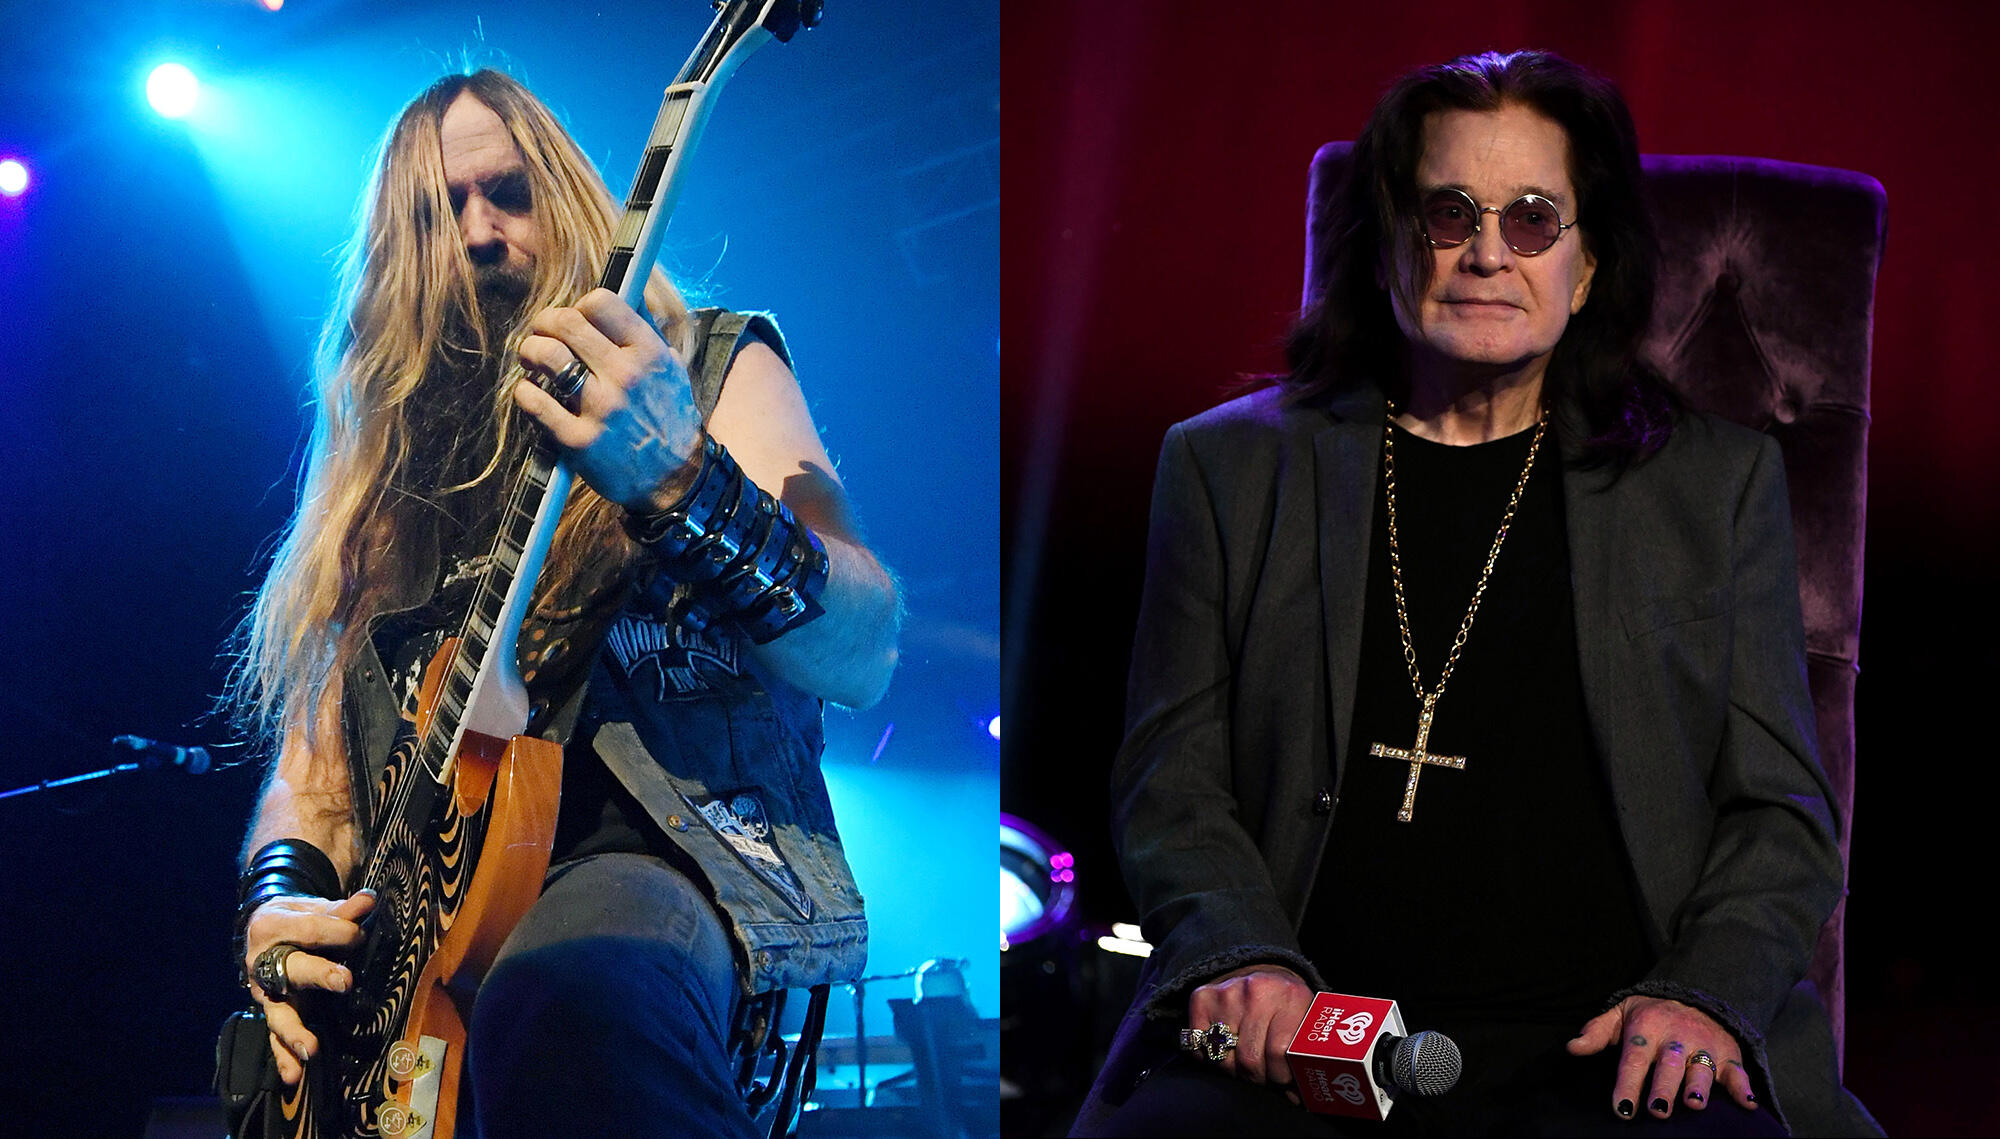 Zakk Wylde Is Not Involved In Ozzy's New Album But Says They Are 'All Good' | iHeartRadio